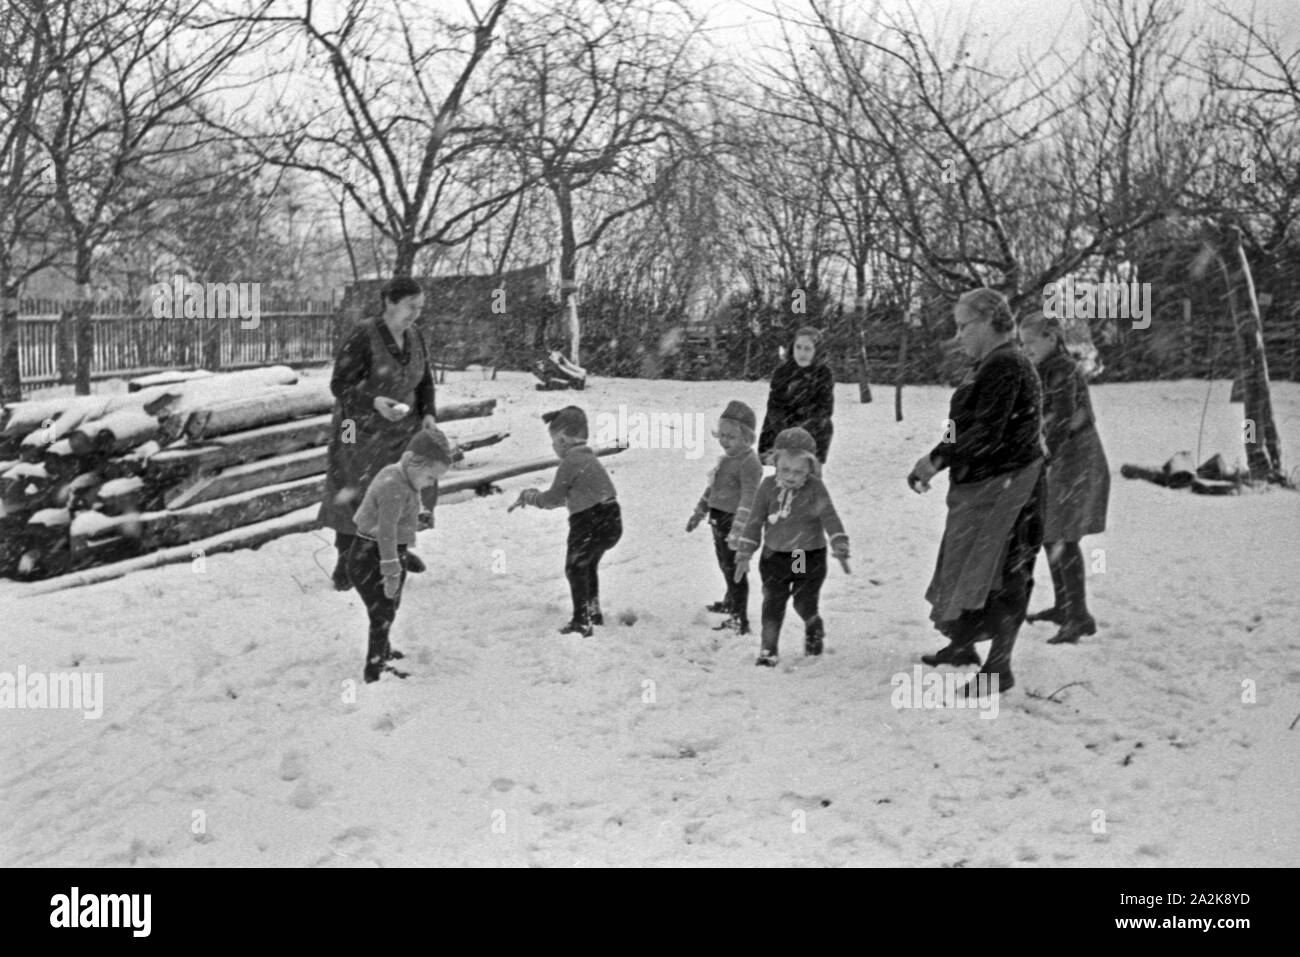 Snowball Fight Children Black And White Stock Photos